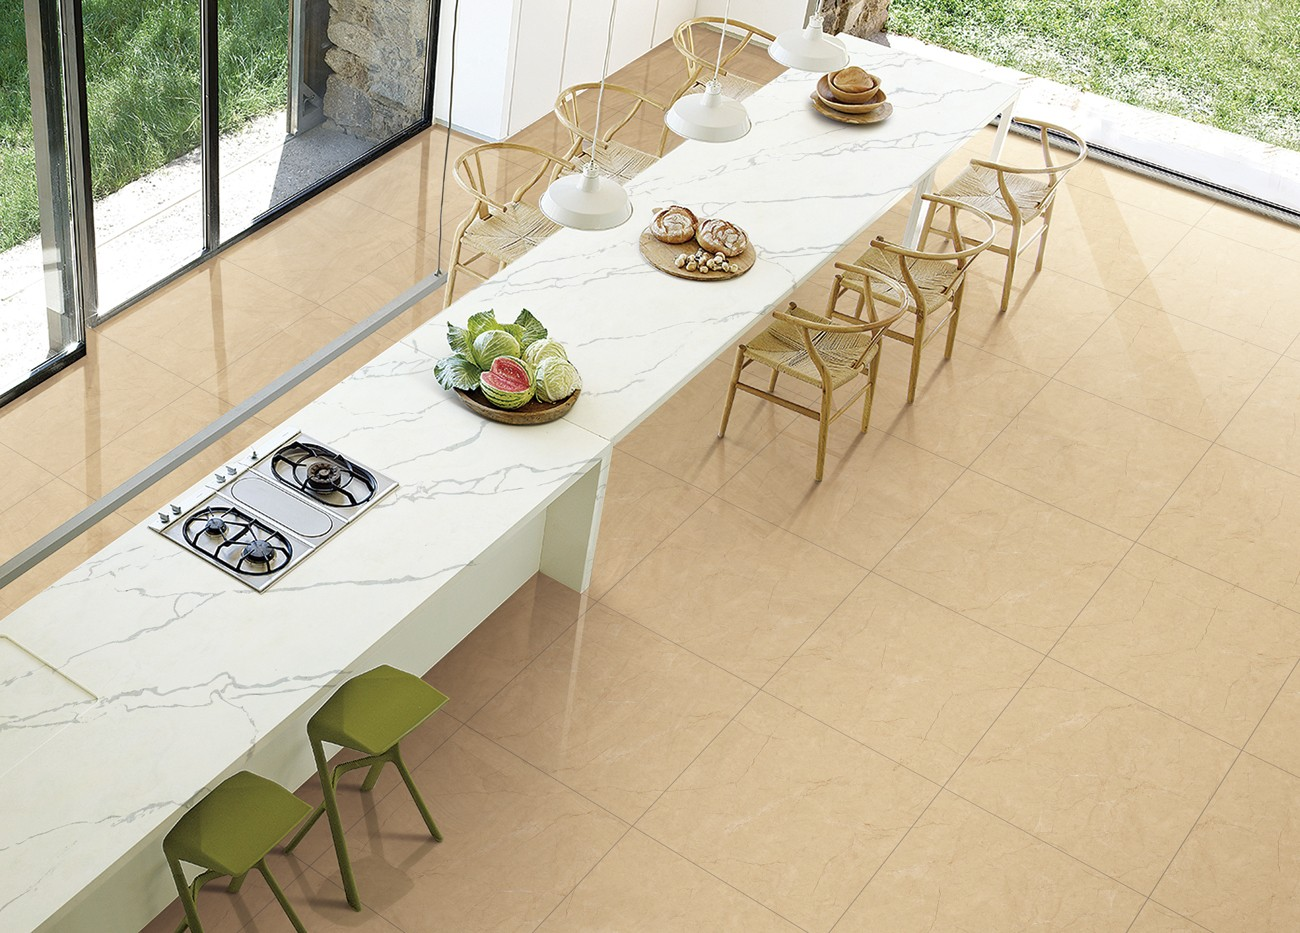 Inorganic Engineered Quartz Artificial Stone Slab For Kitchen Counter Top Manufacturers, Inorganic Engineered Quartz Artificial Stone Slab For Kitchen Counter Top Factory, Supply Inorganic Engineered Quartz Artificial Stone Slab For Kitchen Counter Top